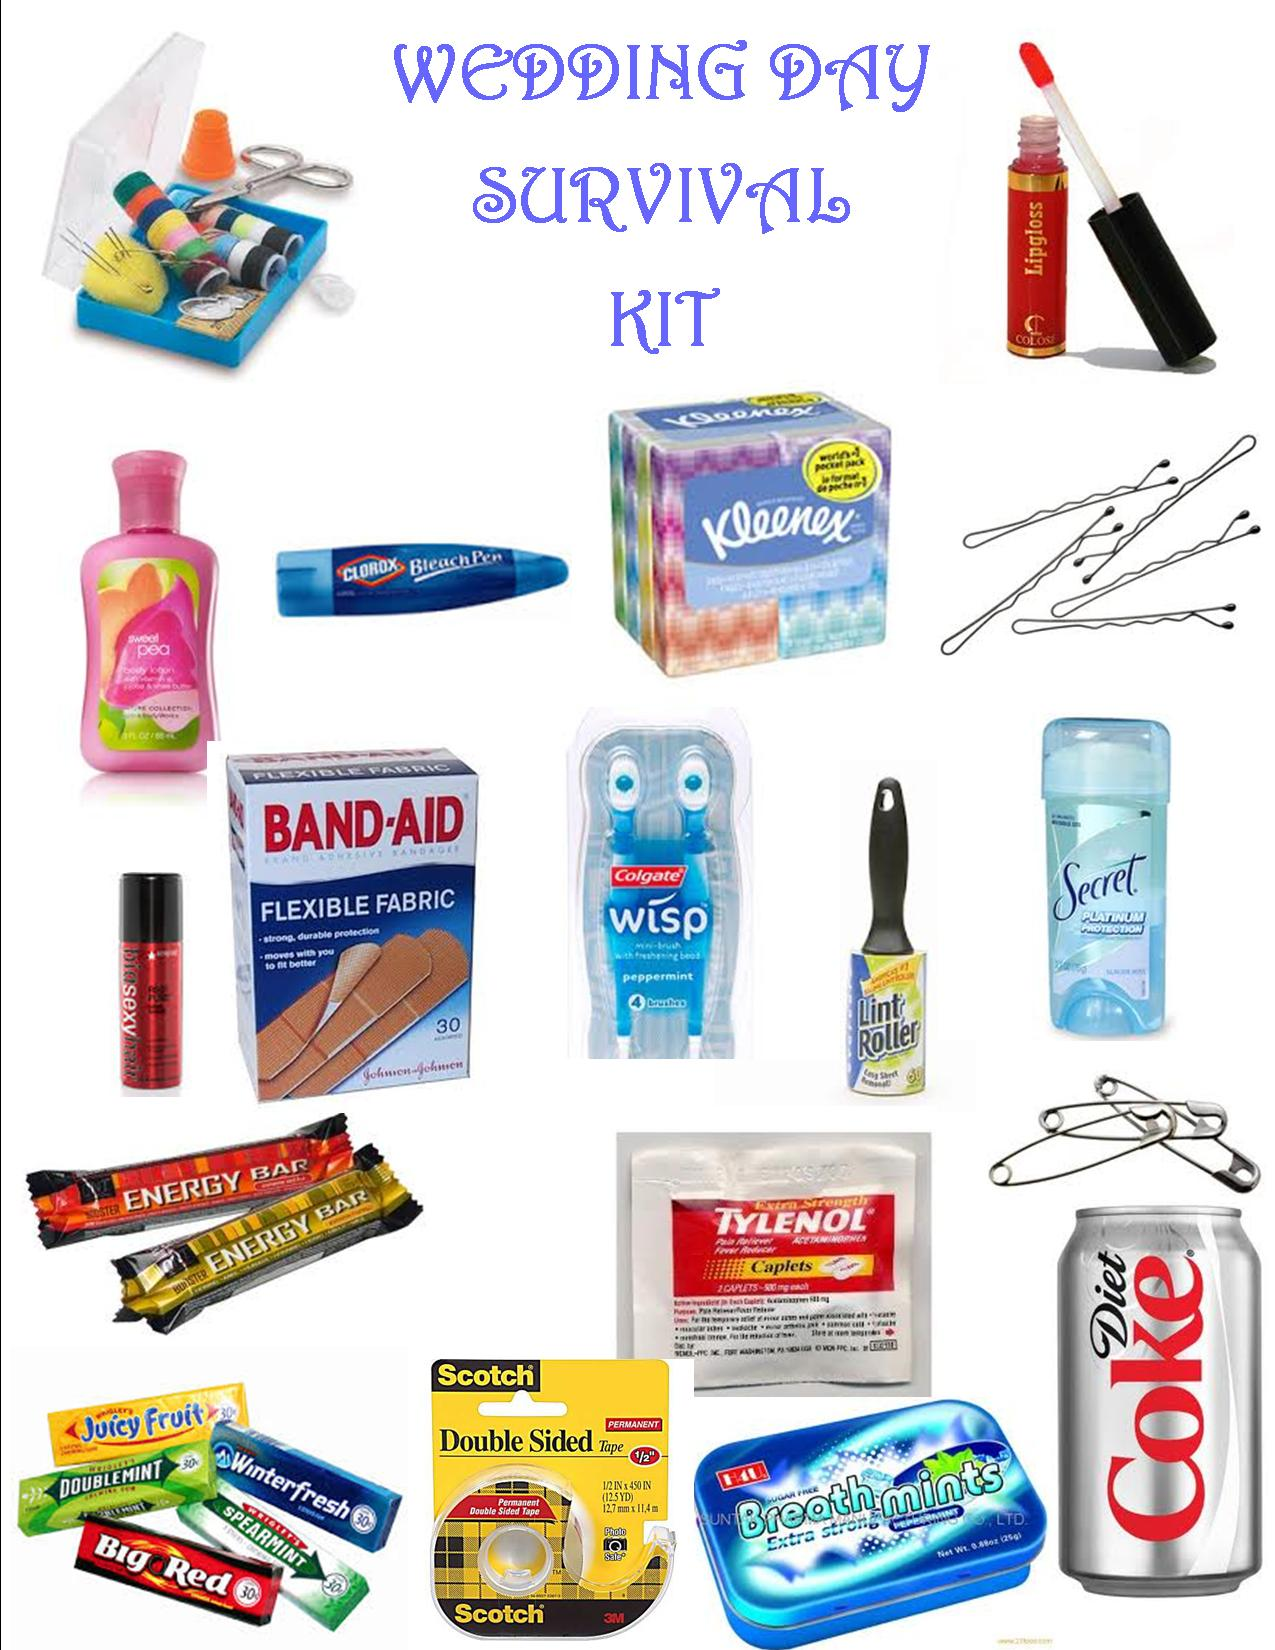 Wedding Survival Kit - events to CELEBRATE!